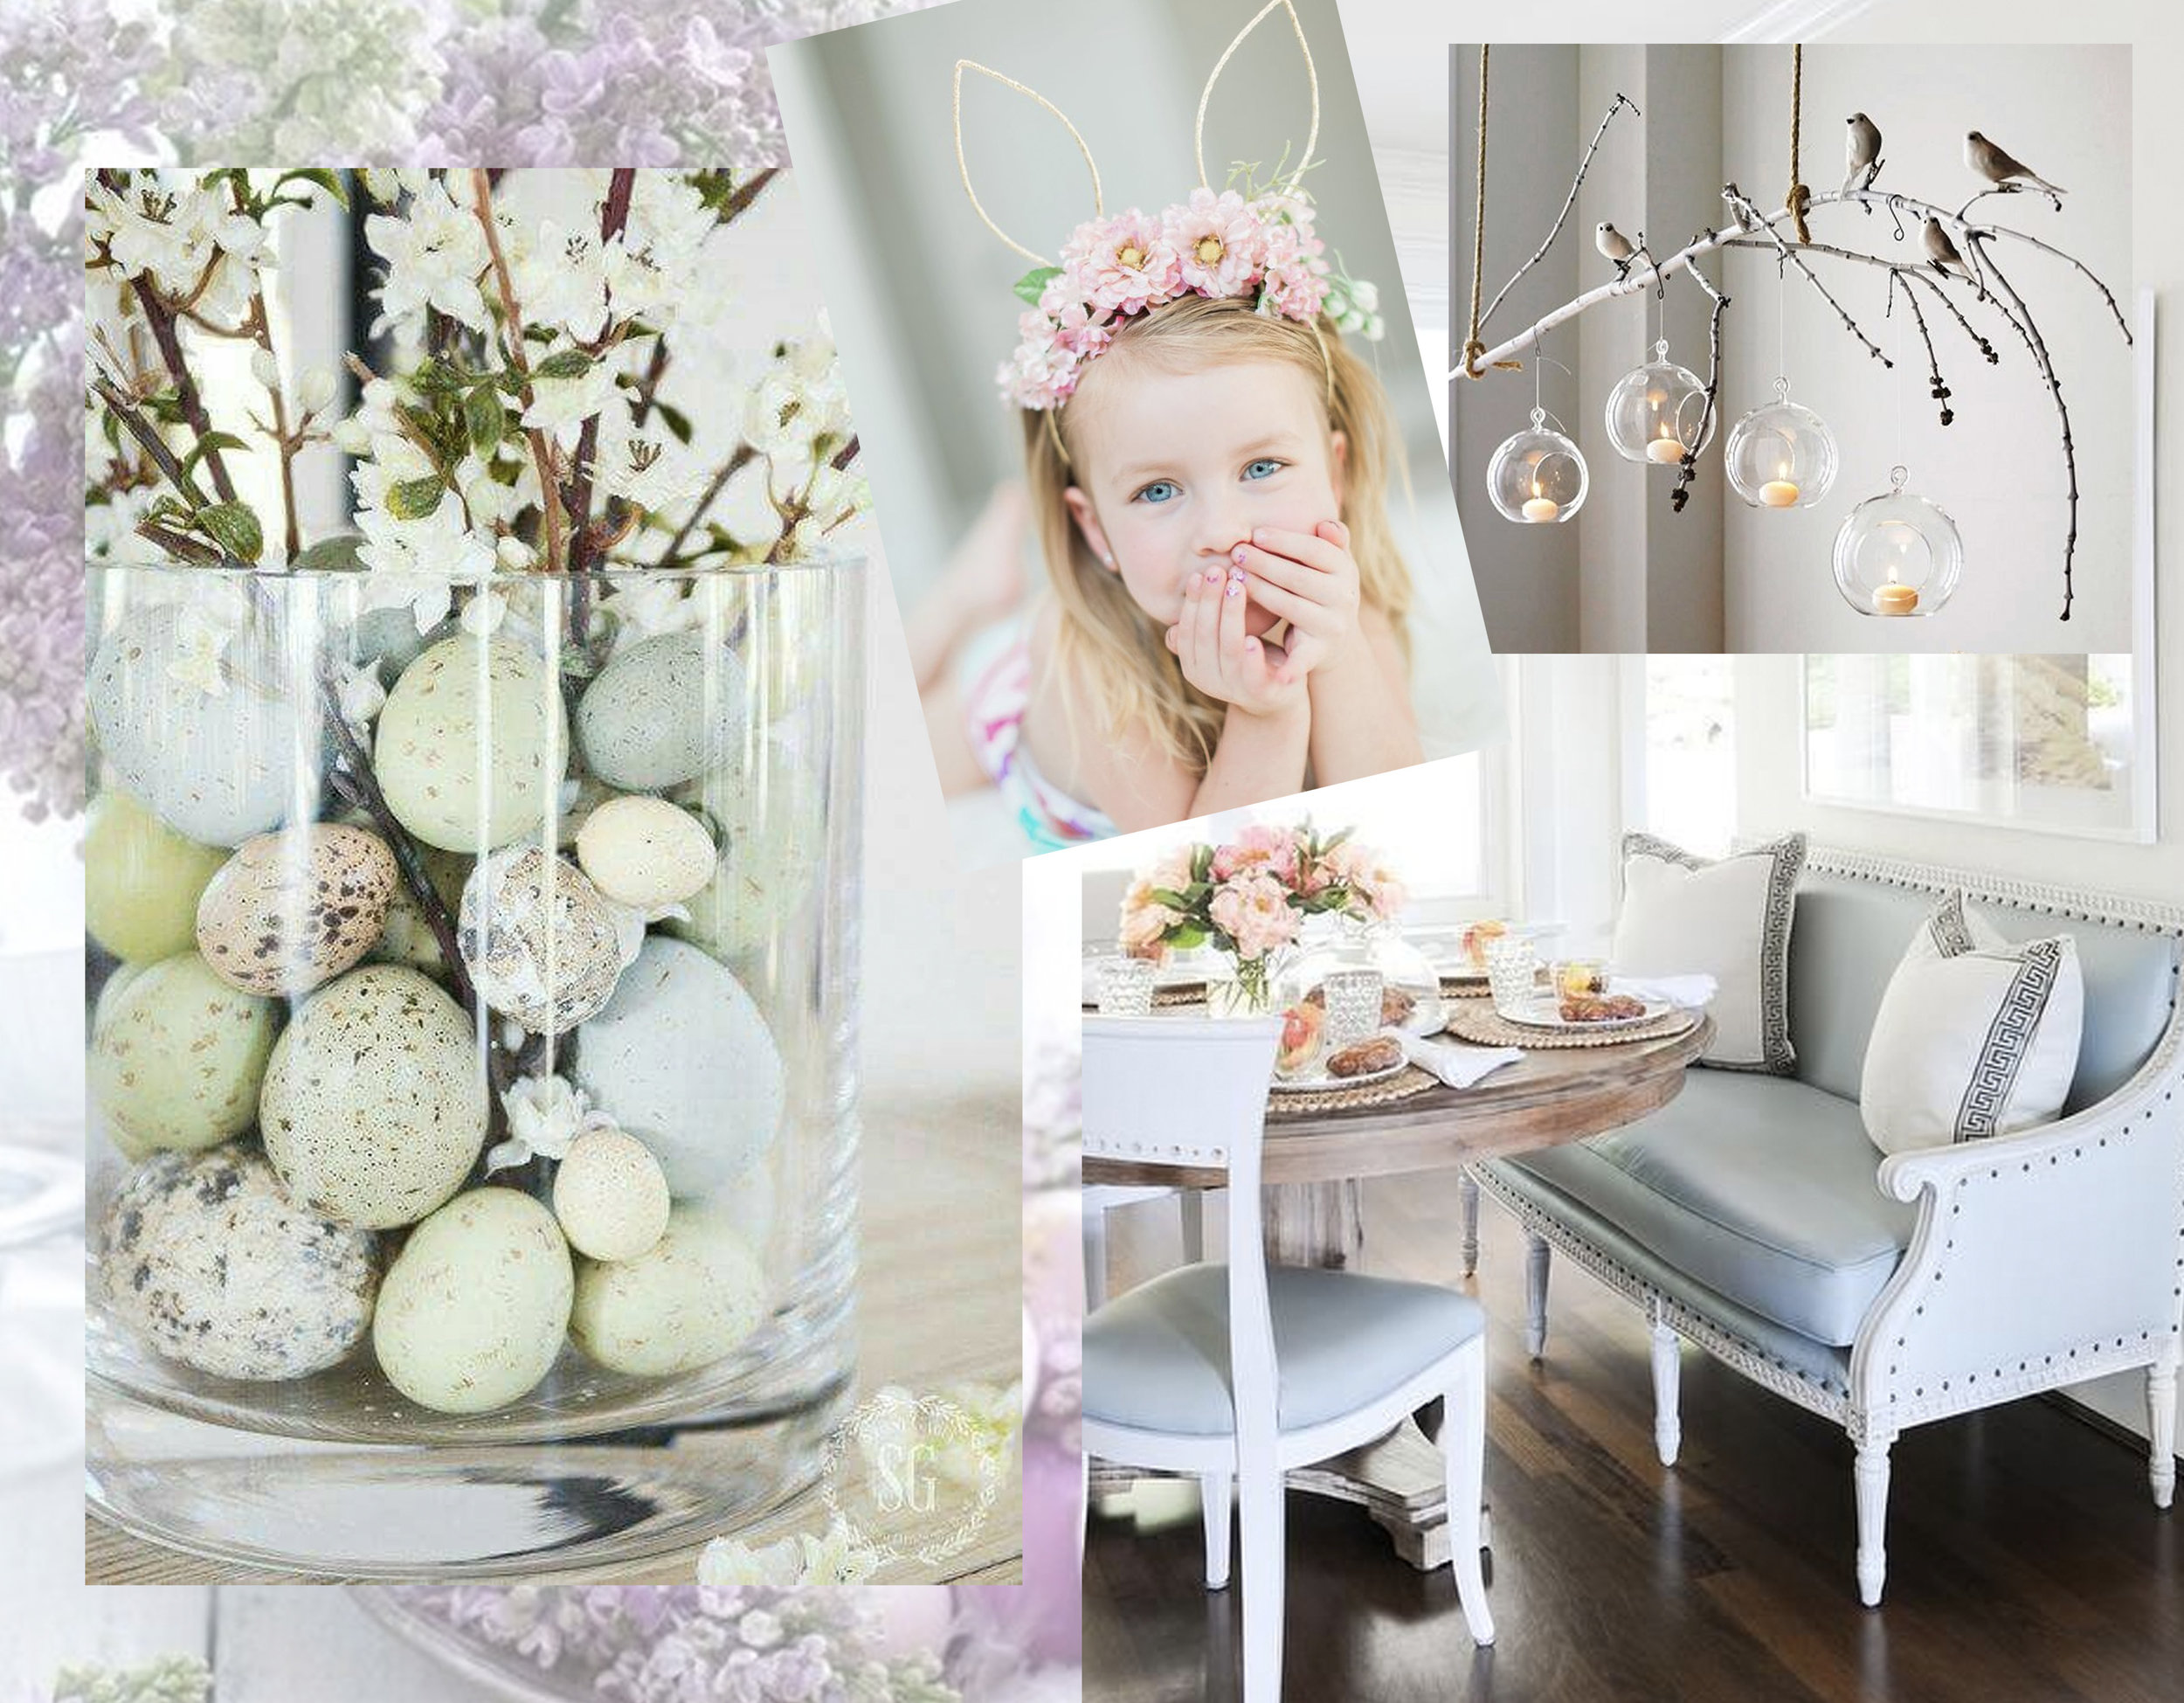 small eggs in vase via  Stone Gable  - little girl with floral crown via  Halleigh Hill - interior image  Kerrisdale Design  - branch above the dining table via Pinterest